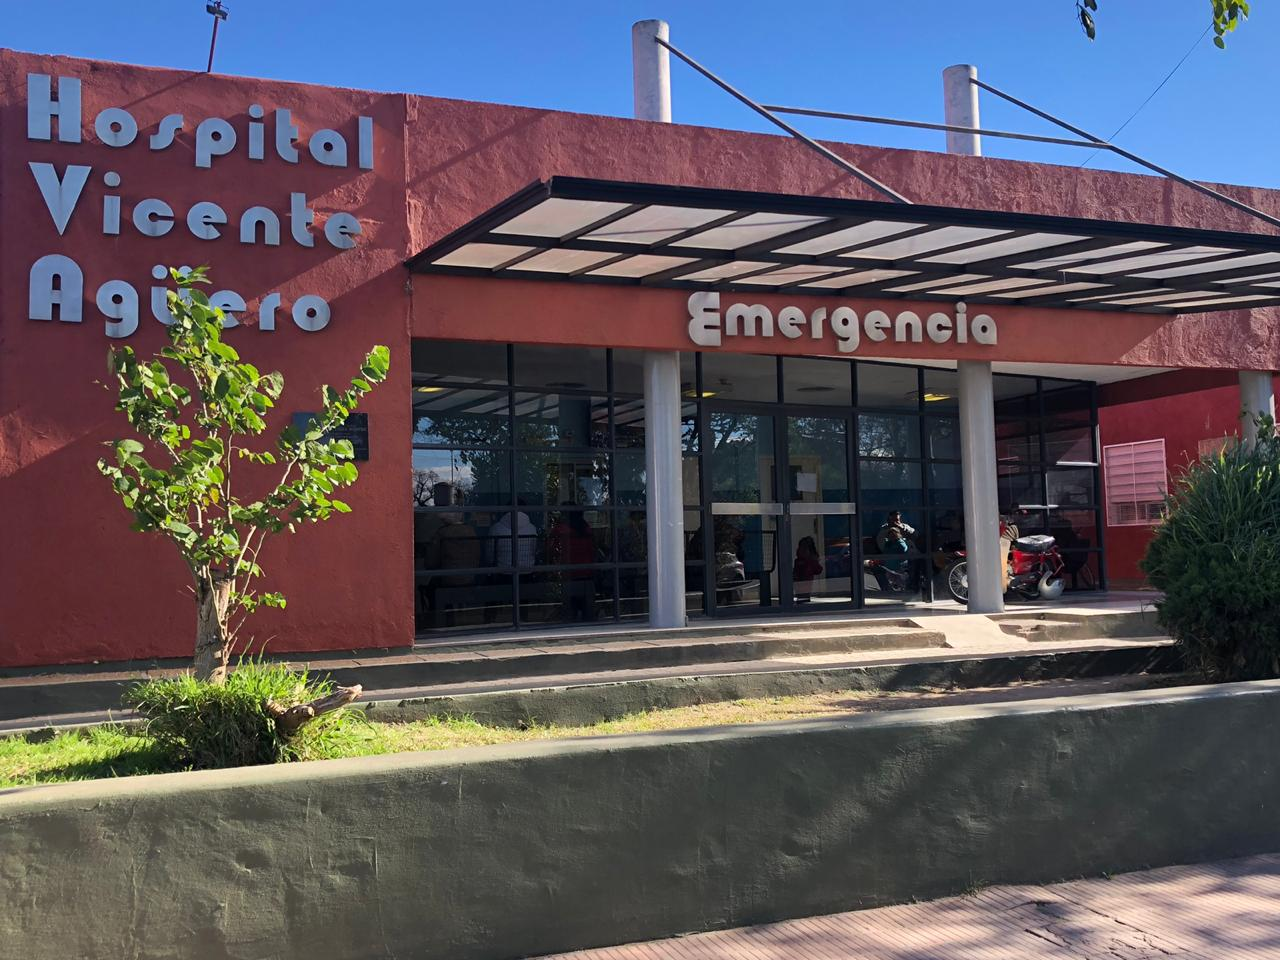 hospital vicente aguero